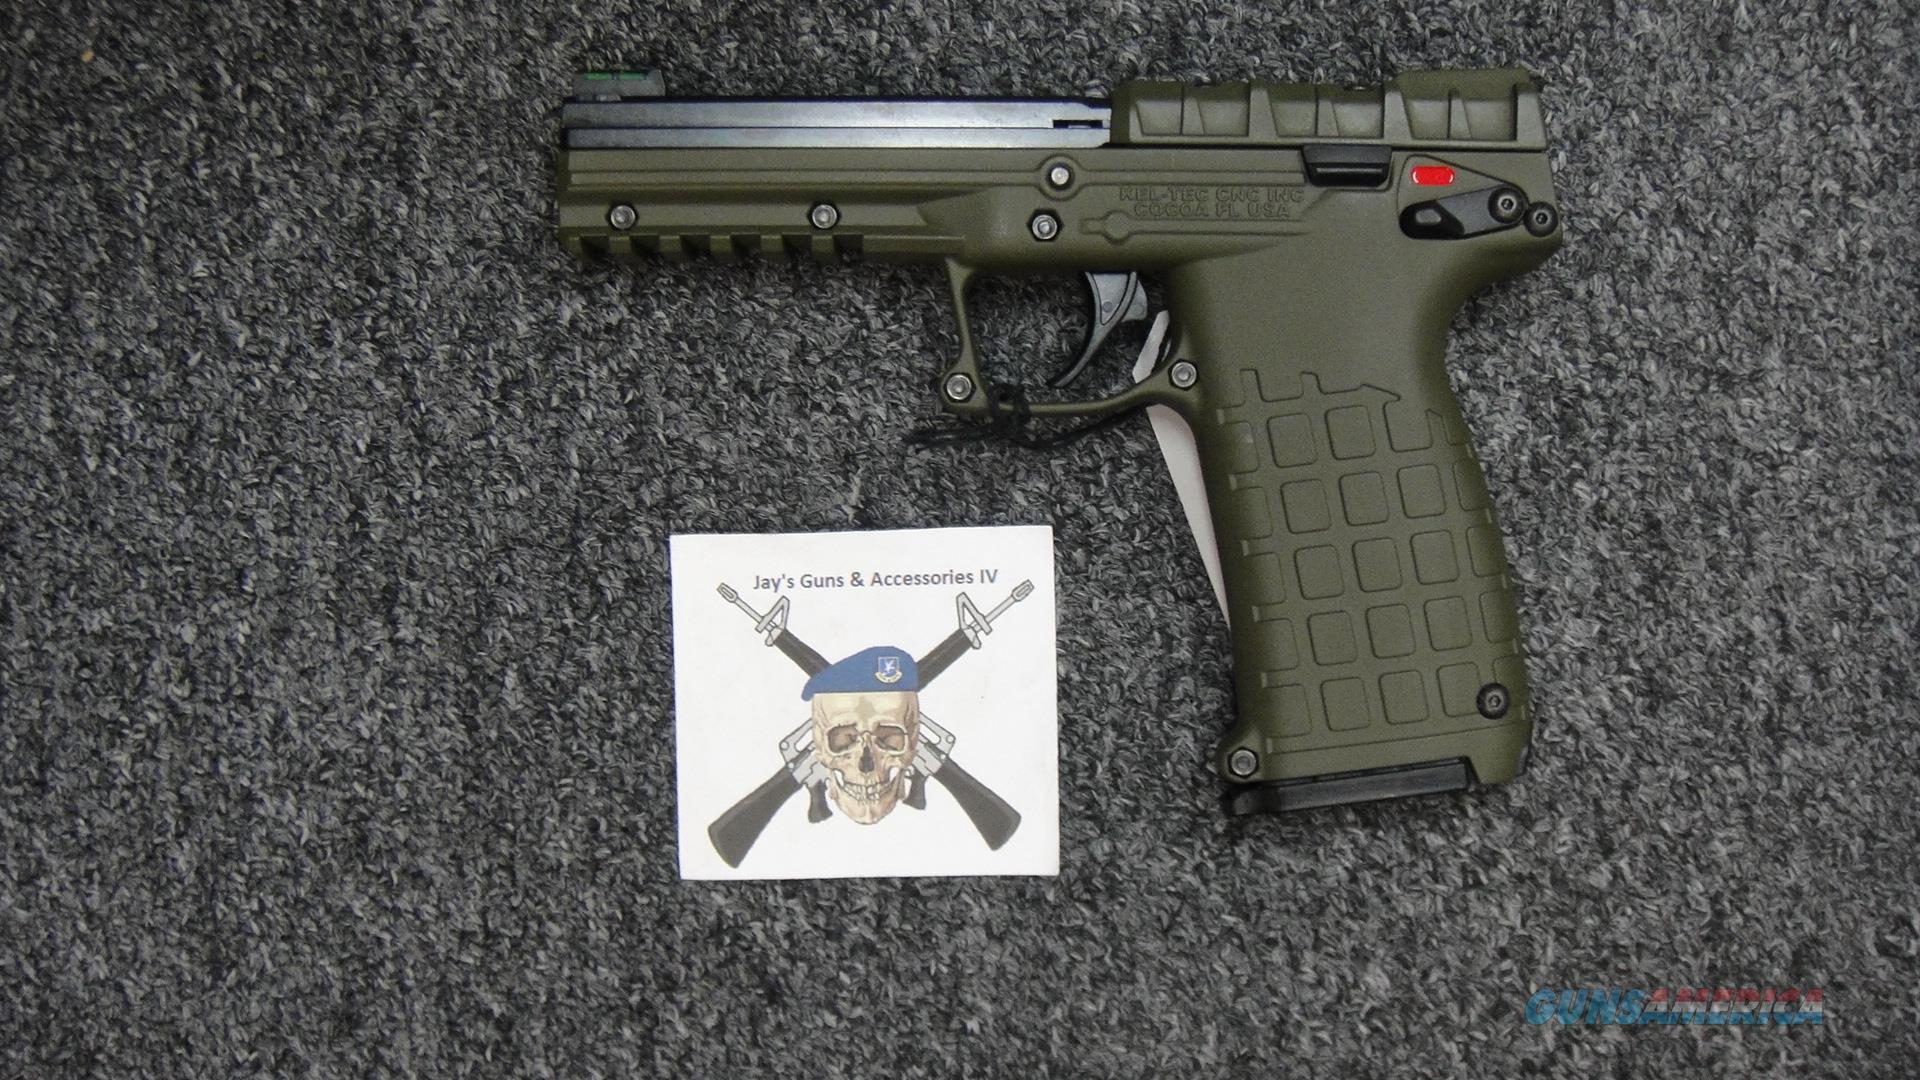 Kel-Tec PMR-30 w/OD Green Finish  Guns > Pistols > Kel-Tec Pistols > Pocket Pistol Type